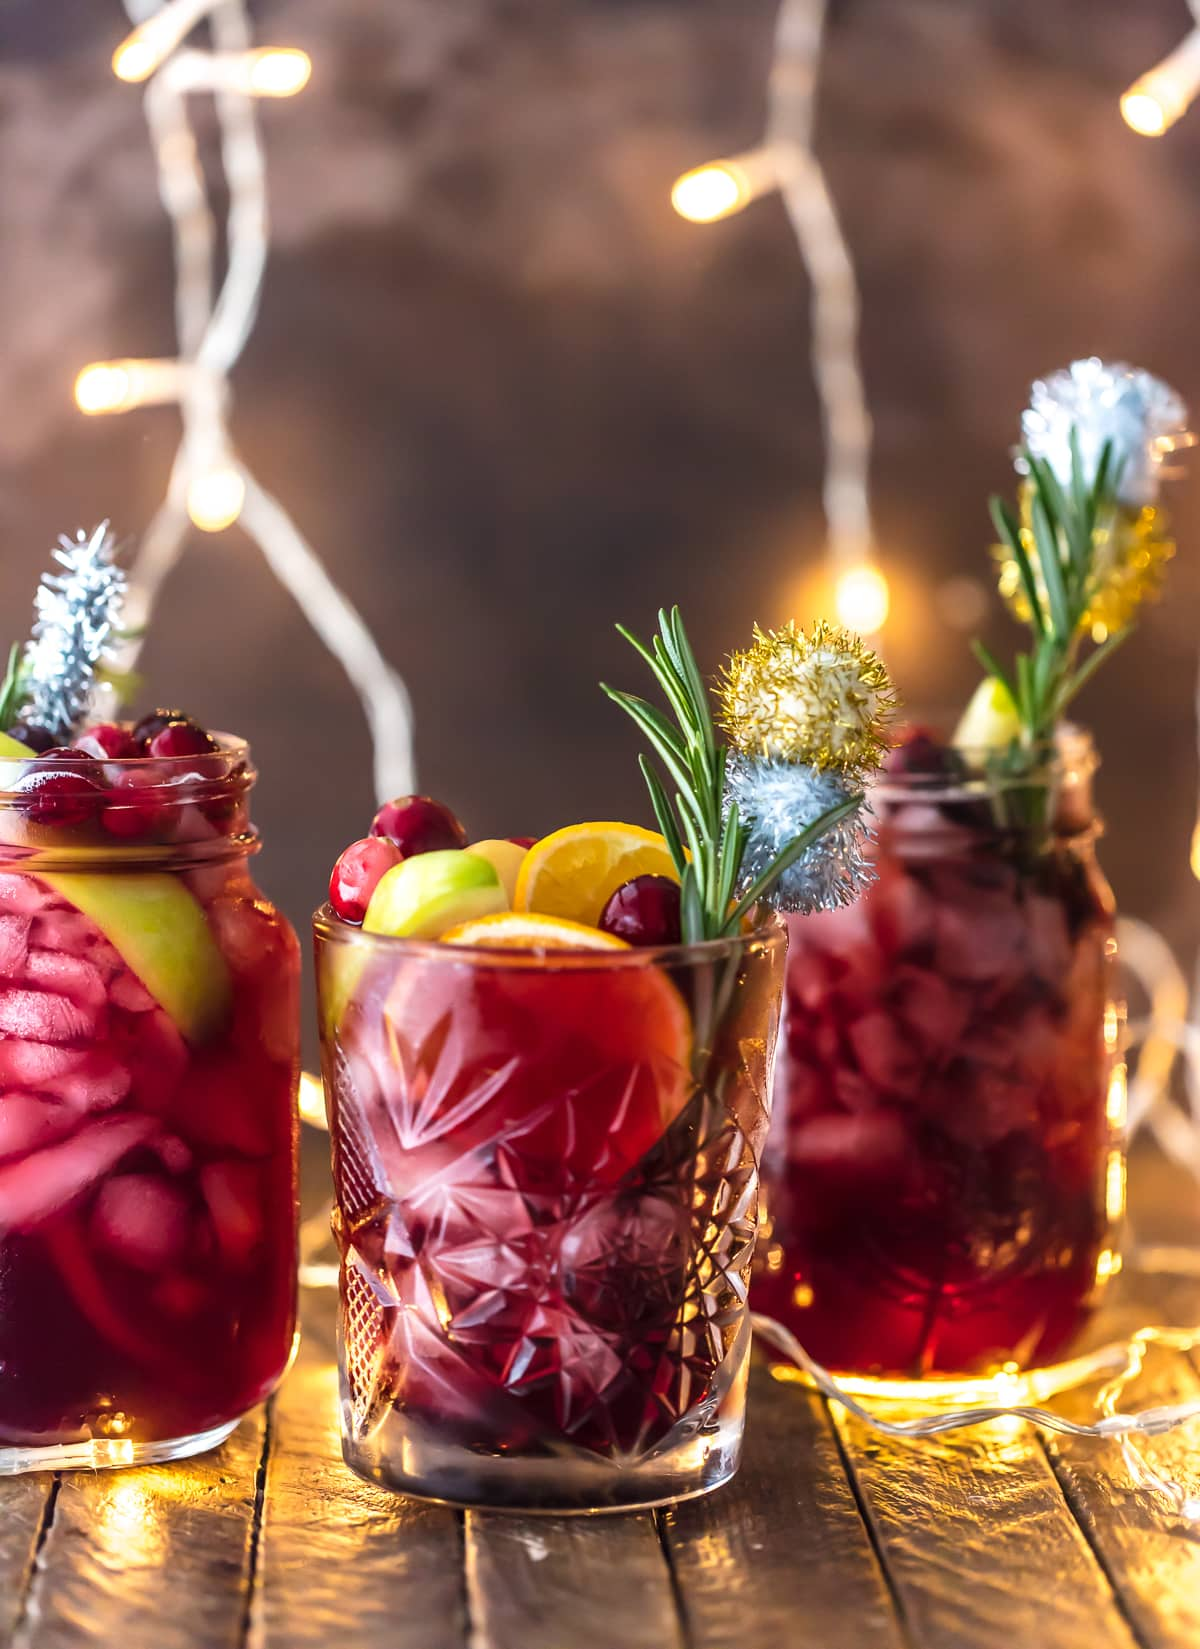 Christmas cocktail recipe in three glasses